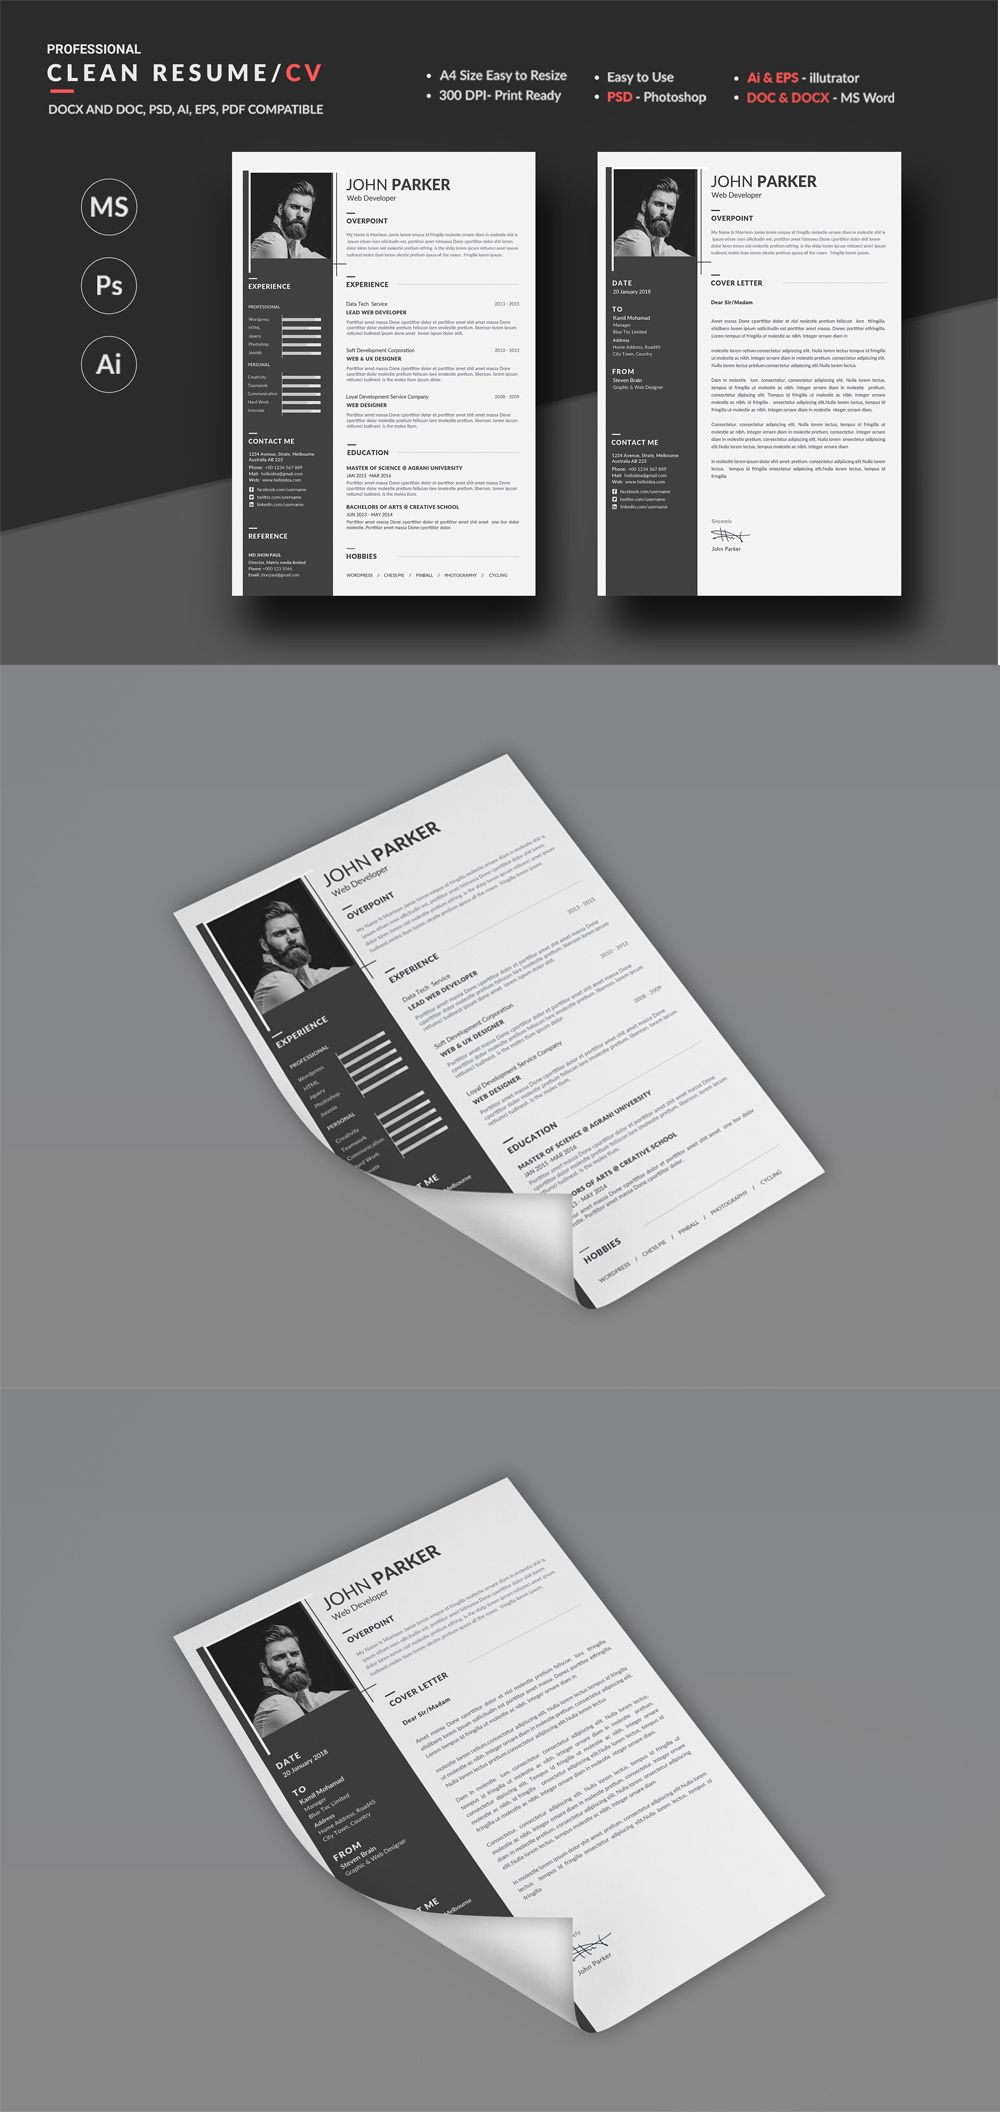 Resume / Cv Templates PSD Unique resume template, Resume